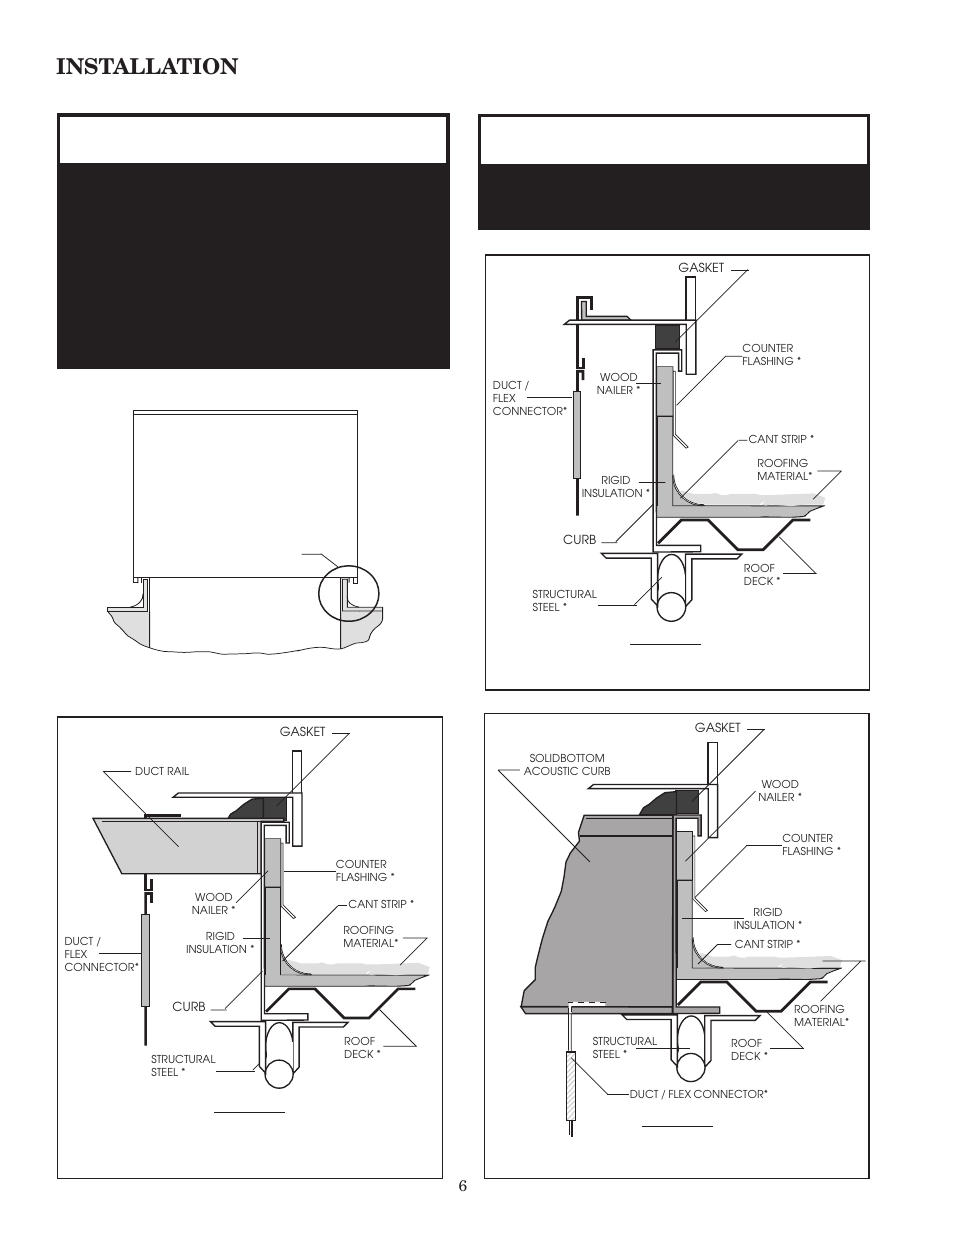 aaon rk 60 page6 caution, warning, installation aaon rk 60 user manual page 6 24